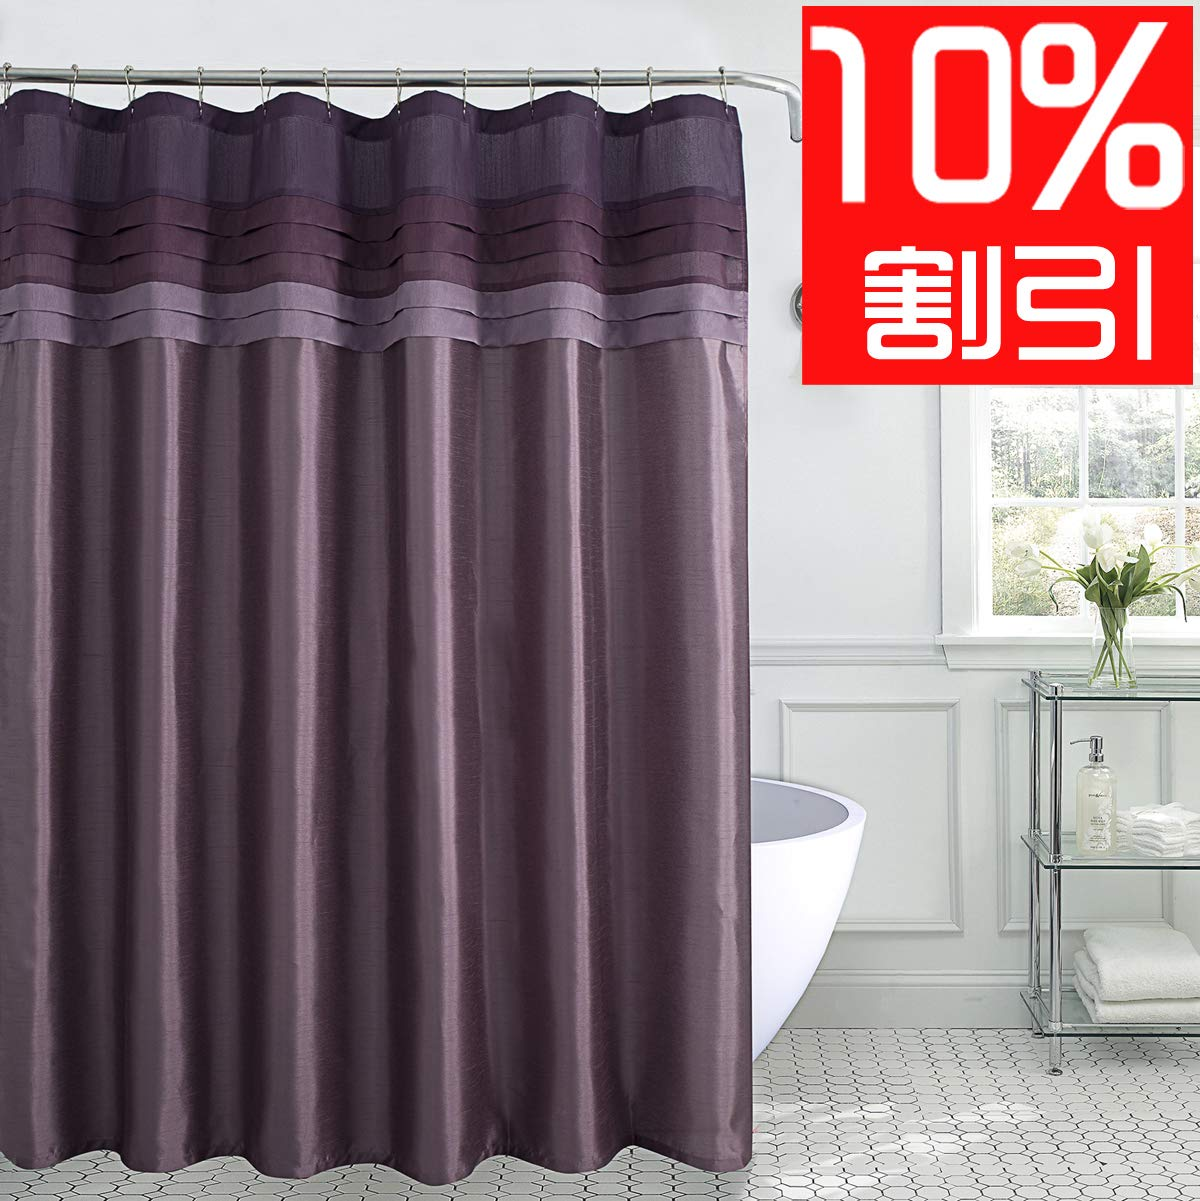 Jarl Home 70 72 Shower Curtains For Bathroom 3 Color Stitching Polyester Purple Shower Curtain Without Hooks